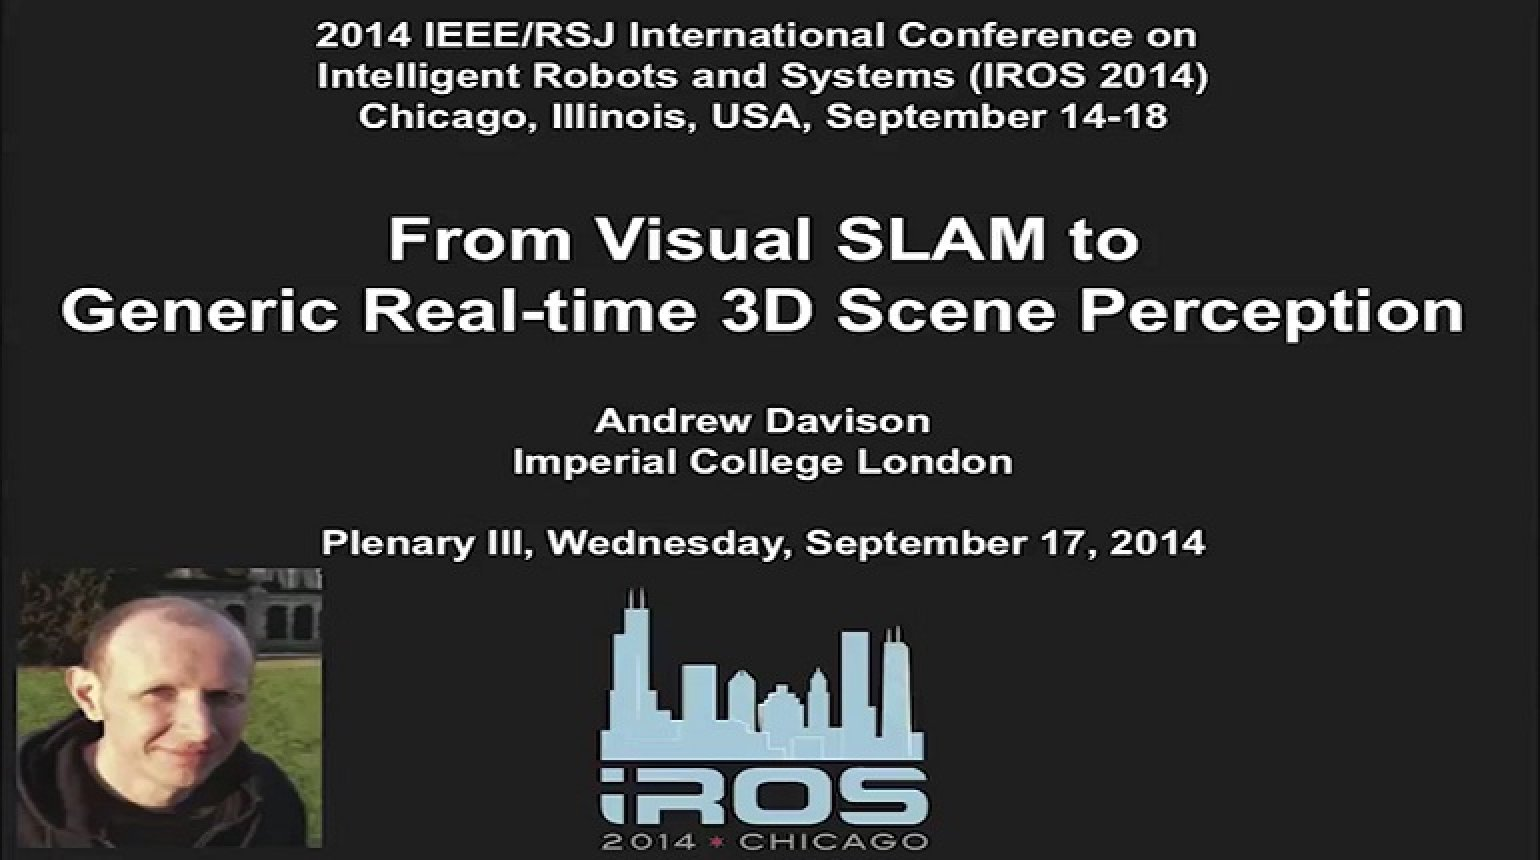 From Visual SLAM to Generic Real-Time 3D Scene Perception